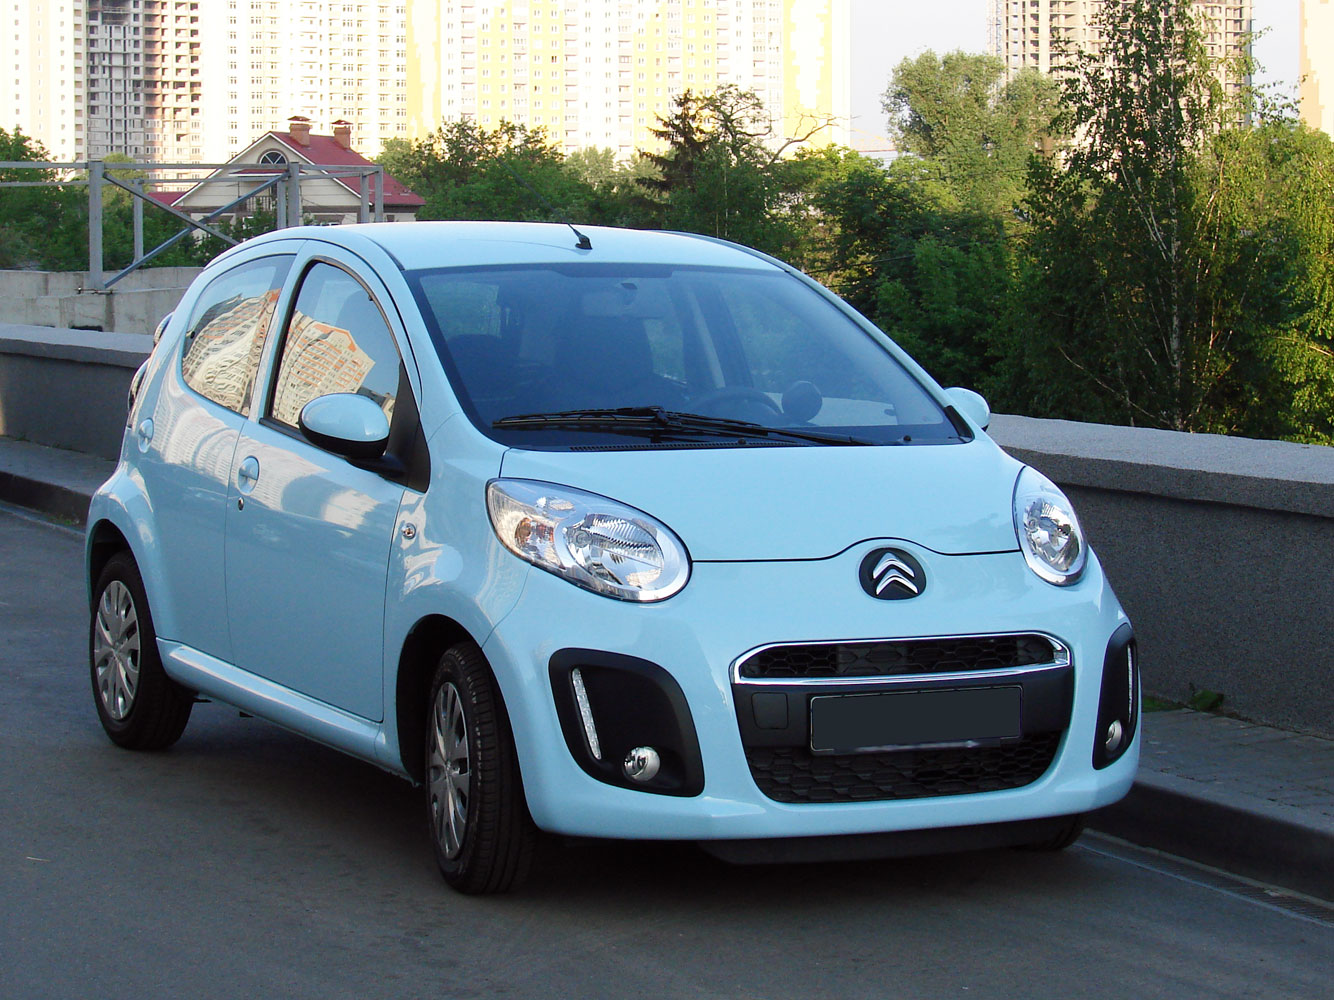 citroen wallpaper (Citroen C1)